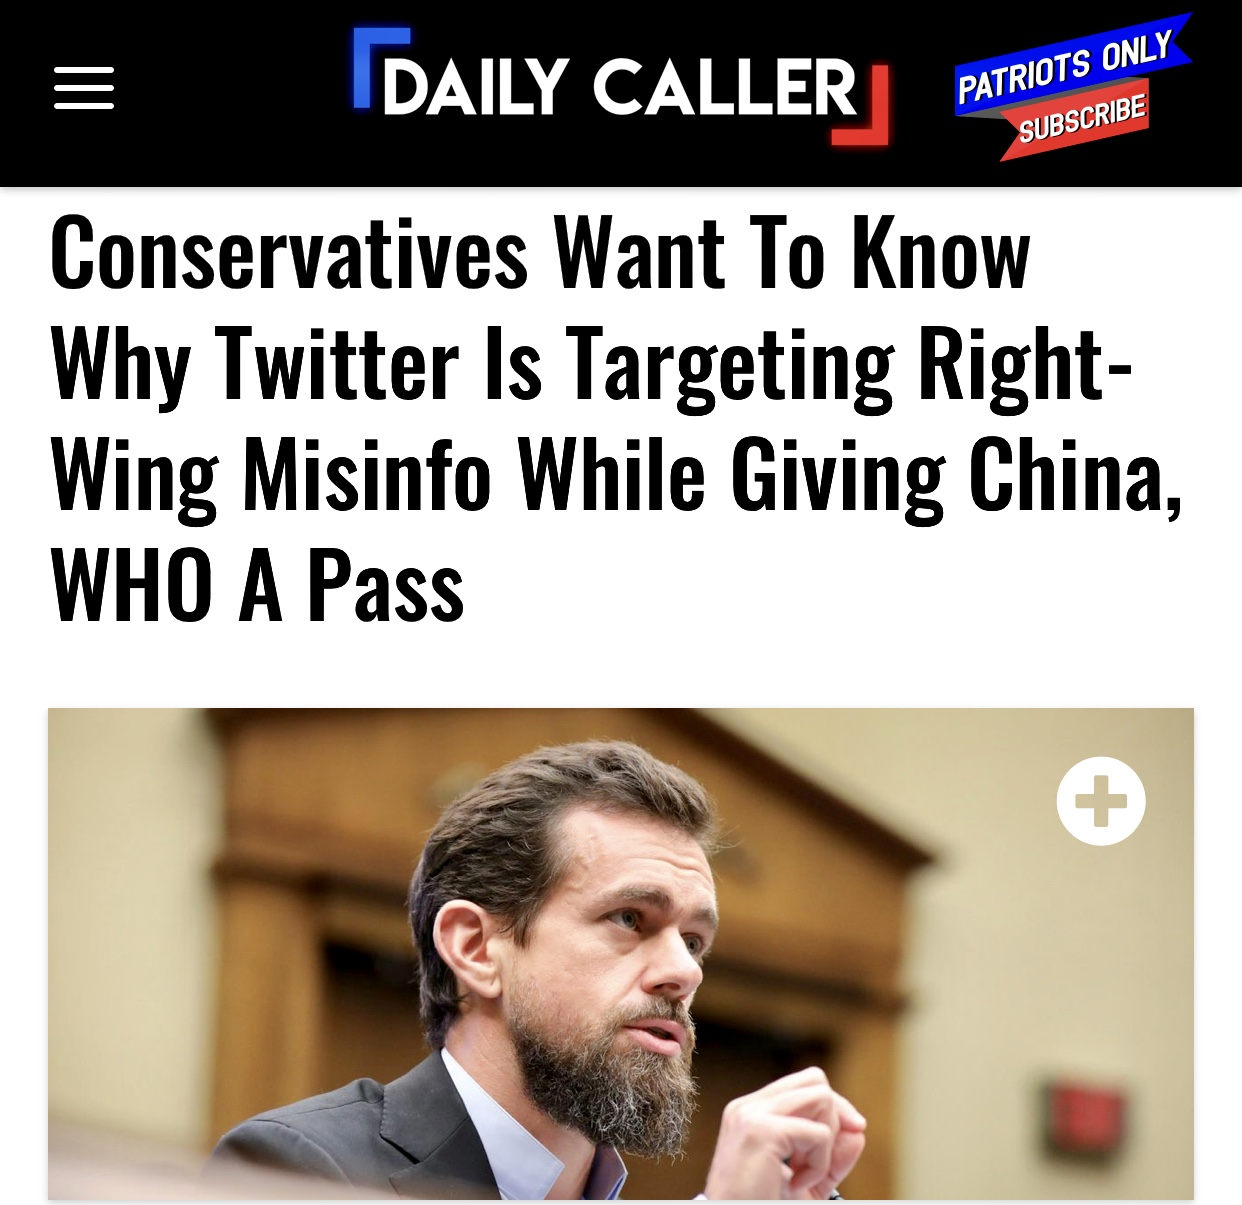 Conservatives Want To Know Why Twitter Is Targeting Right-Wing Info While Giving China, WHO A Pass